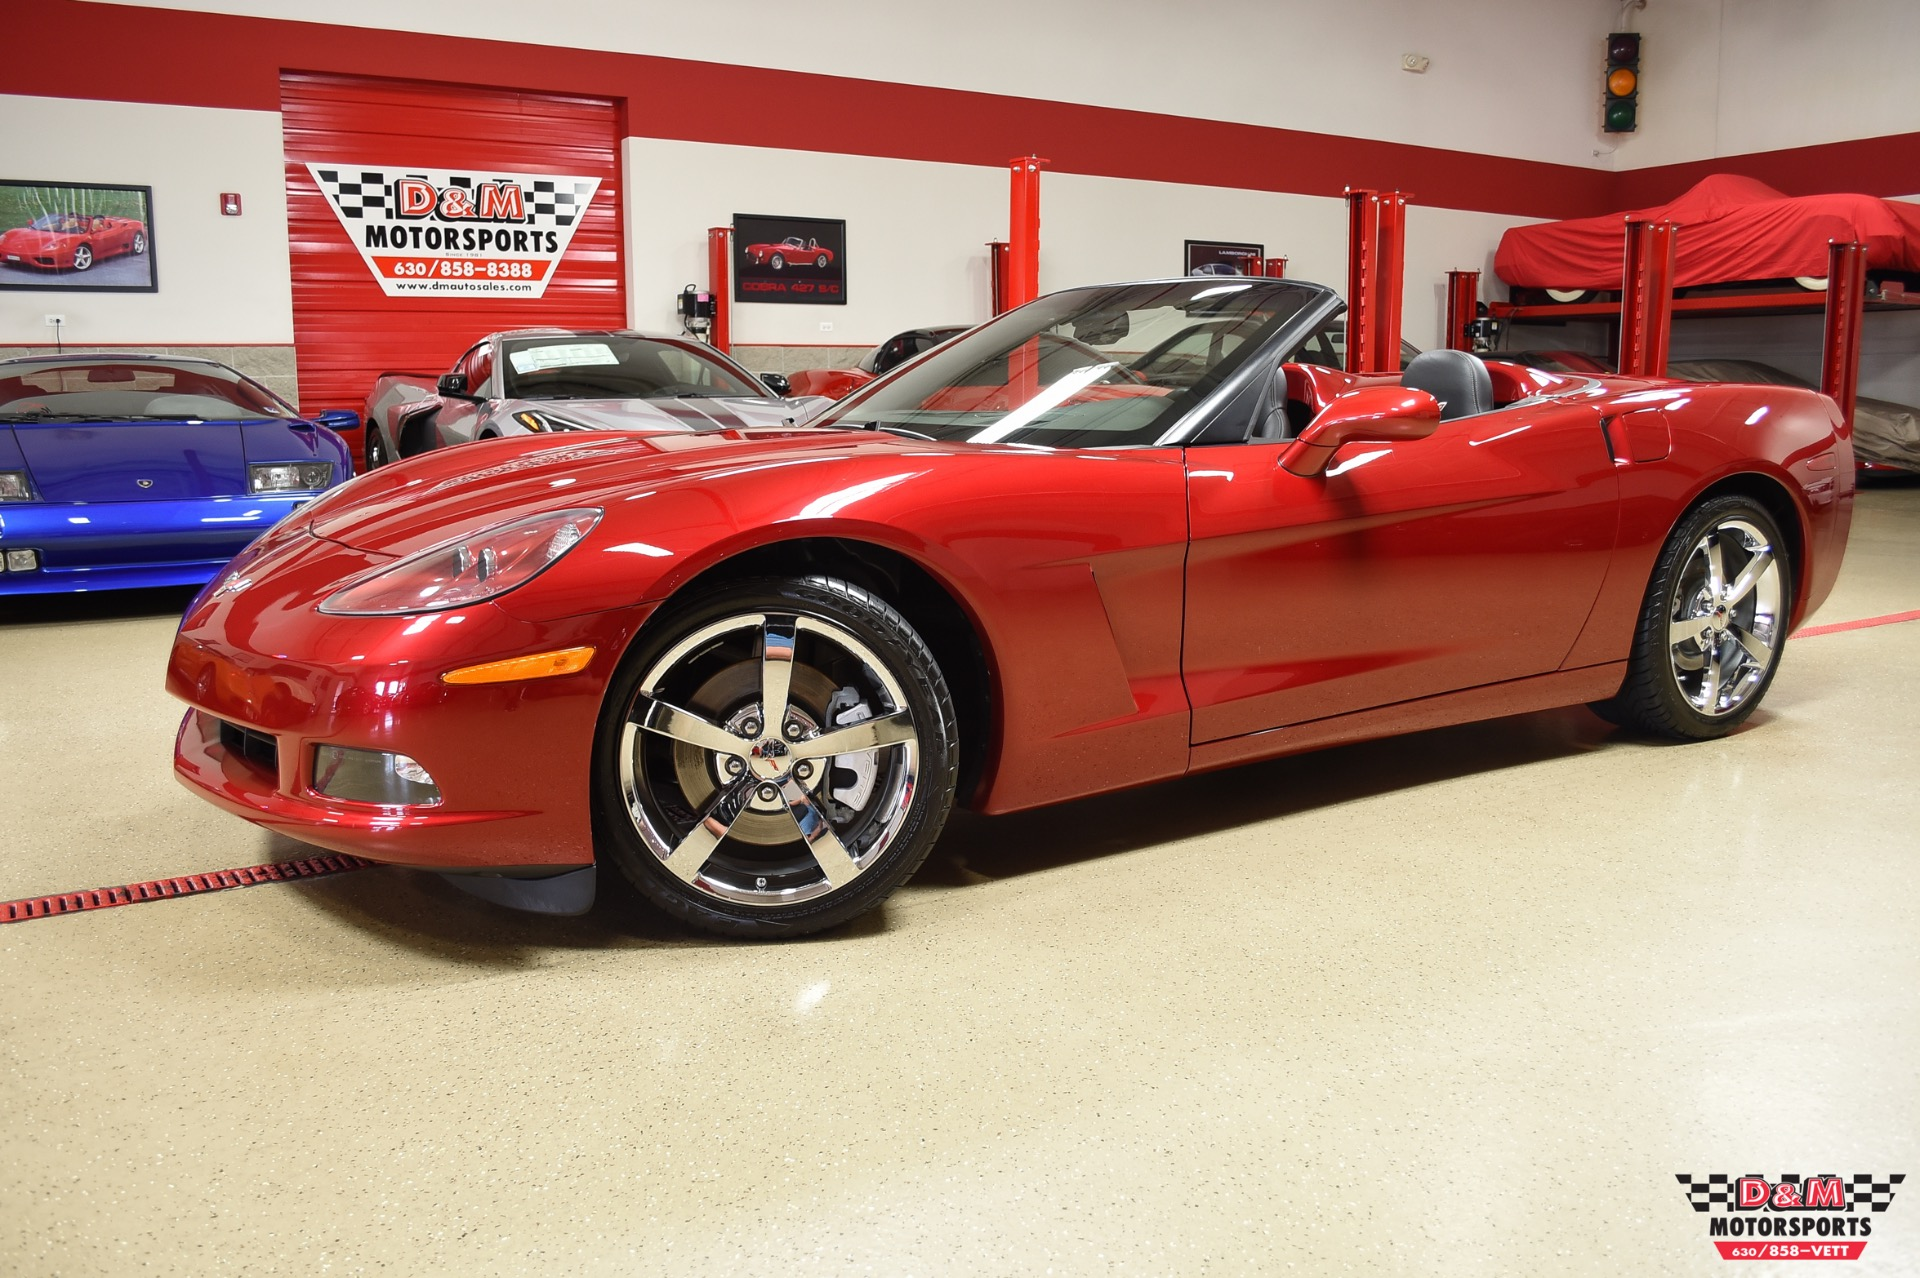 2010 Chevrolet Corvette 3LT Convertible RWD